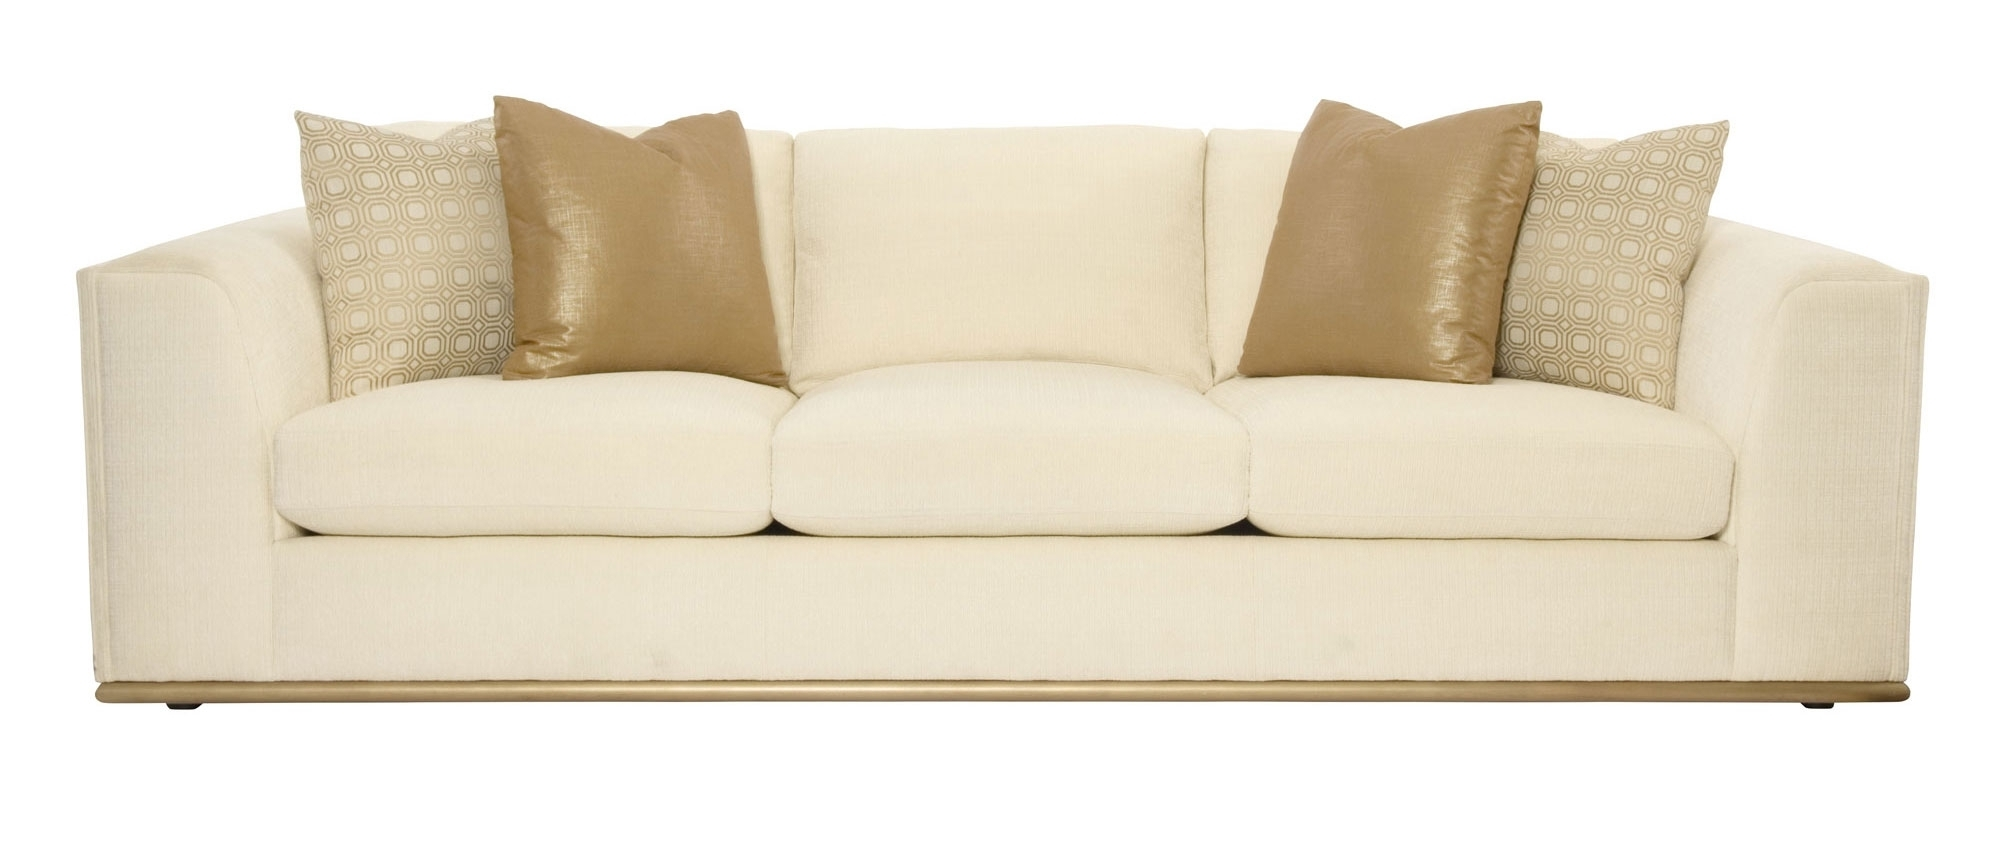 Bernhardt Leather Sofa Dillards • Leather Sofa In Most Current Dillards Sectional Sofas (View 1 of 15)